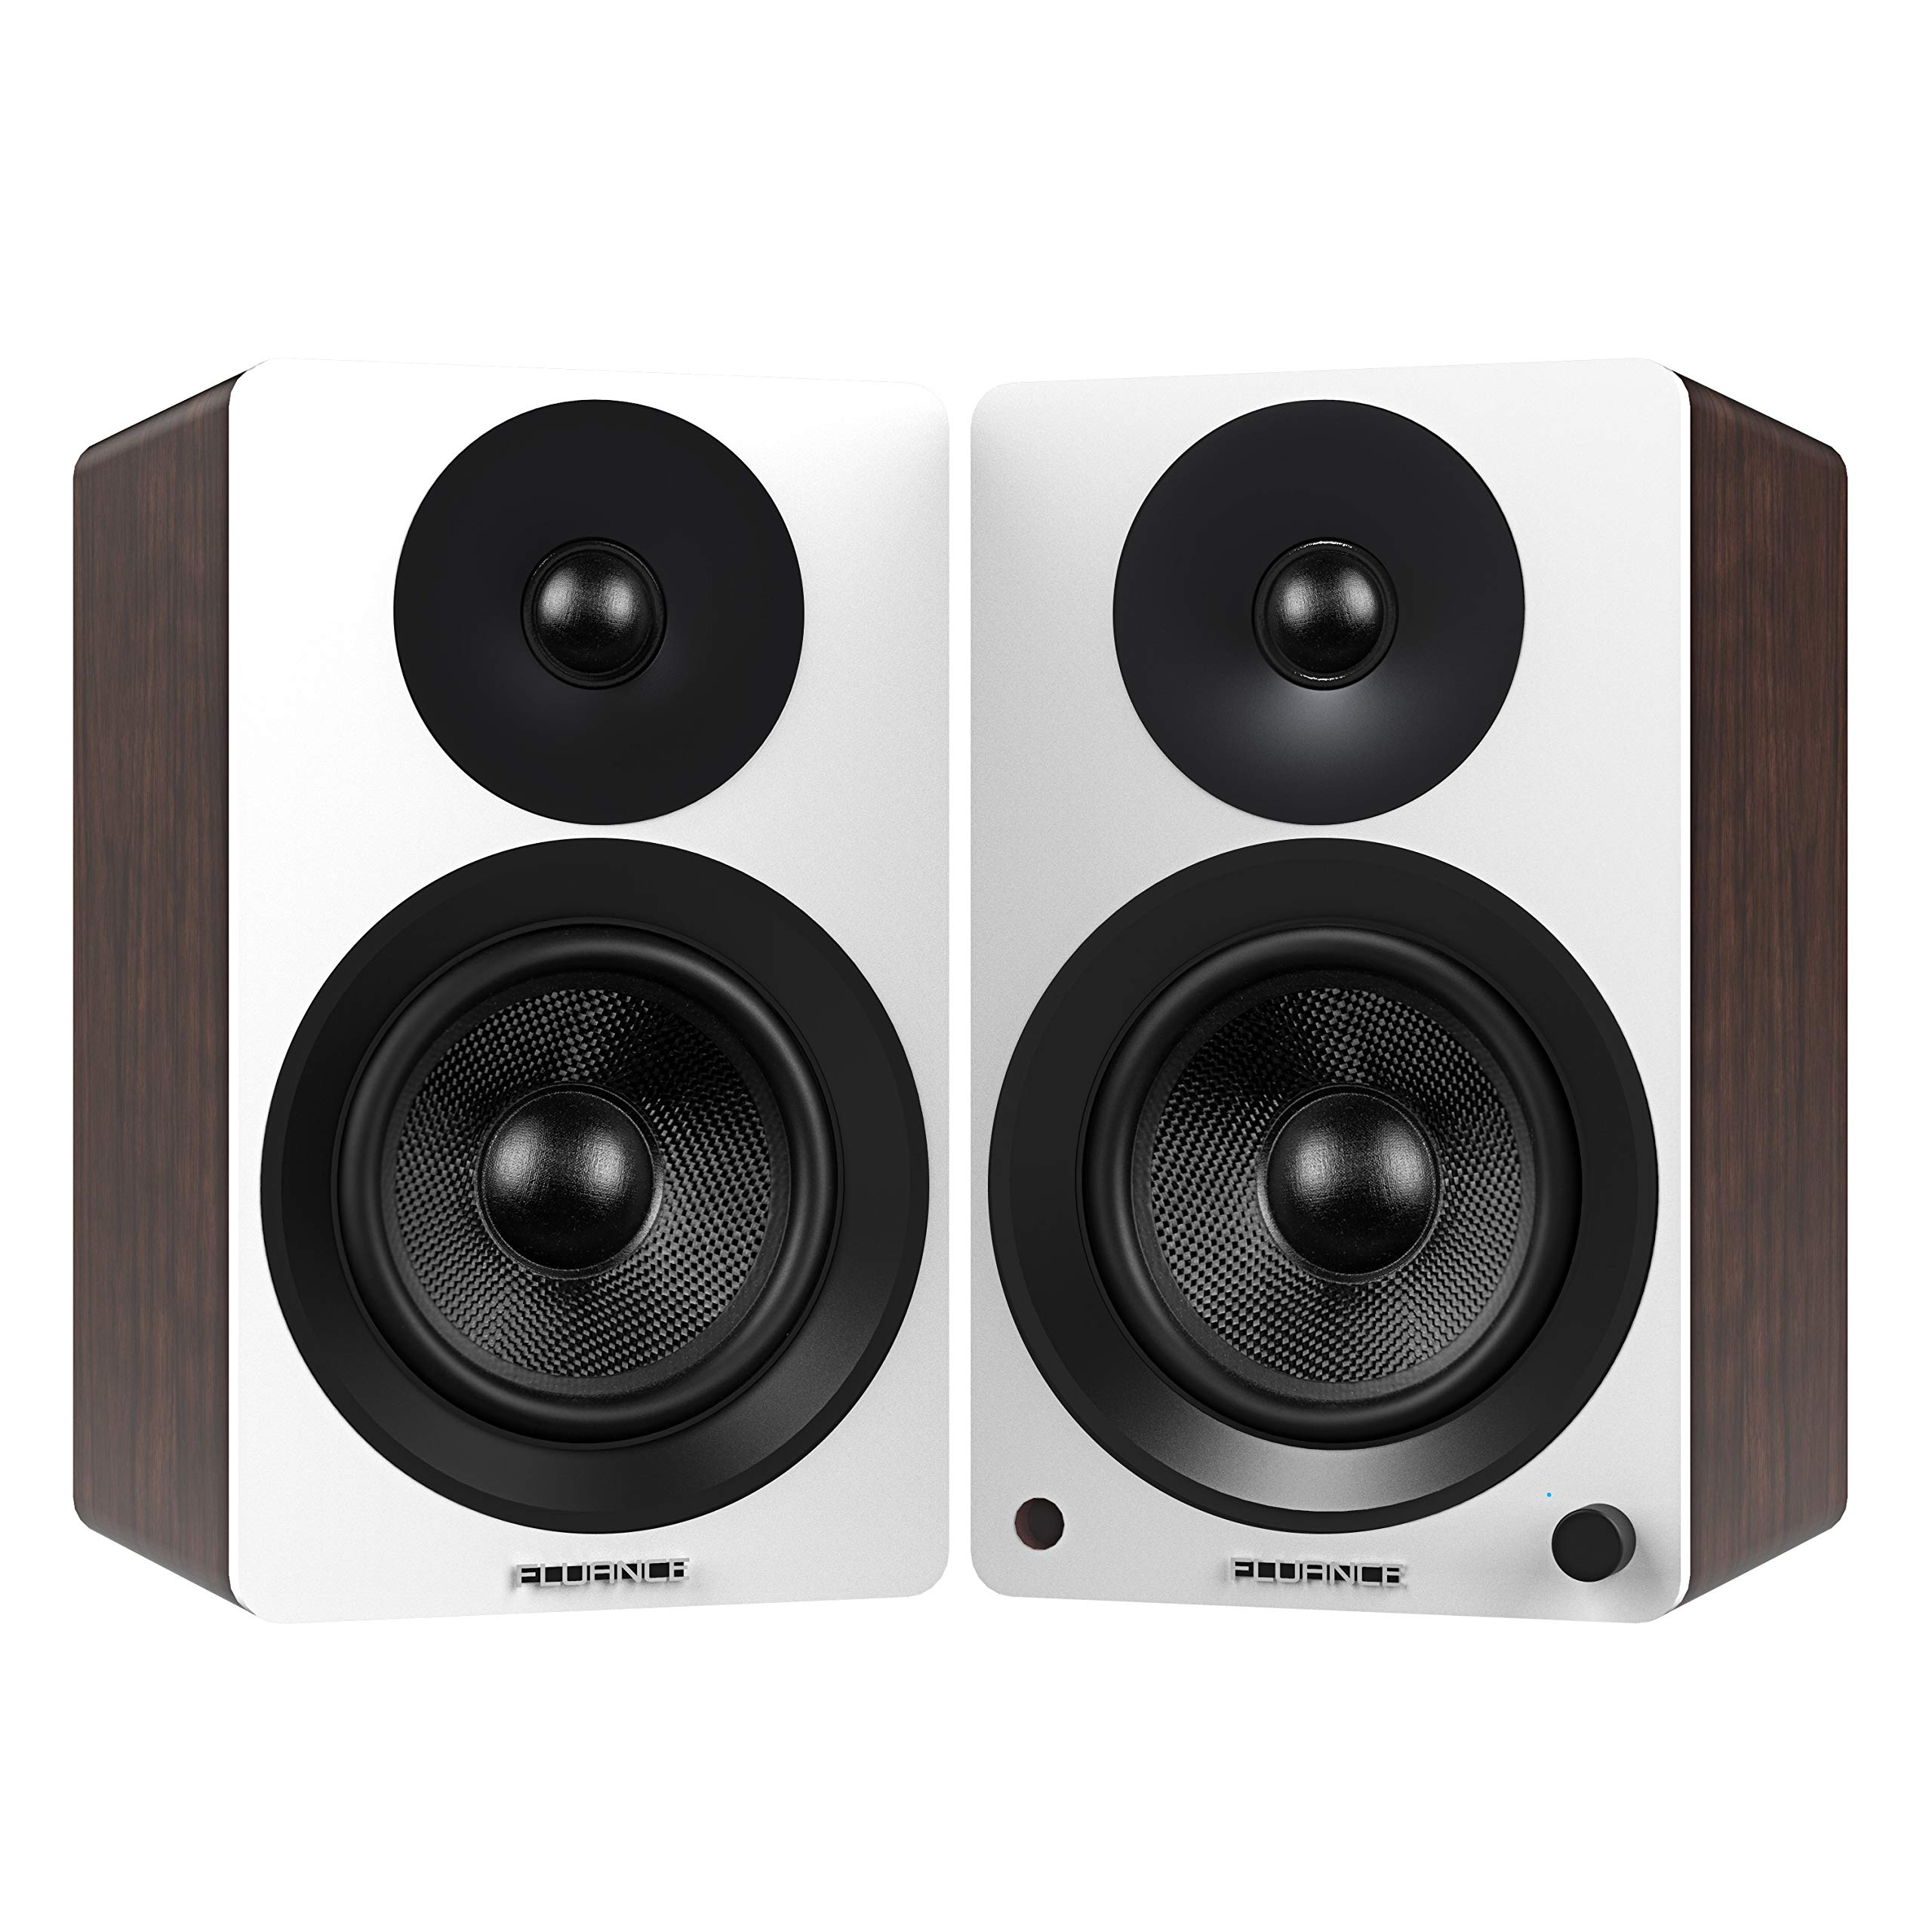 Fluance Ai60 High Performance Powered Two-Way 6.5'' 2.0 Bookshelf Speakers with 100W Class D Amplifier for Turntable, PC, HDTV & Bluetooth aptX Wireless Music Streaming (White Walnut)